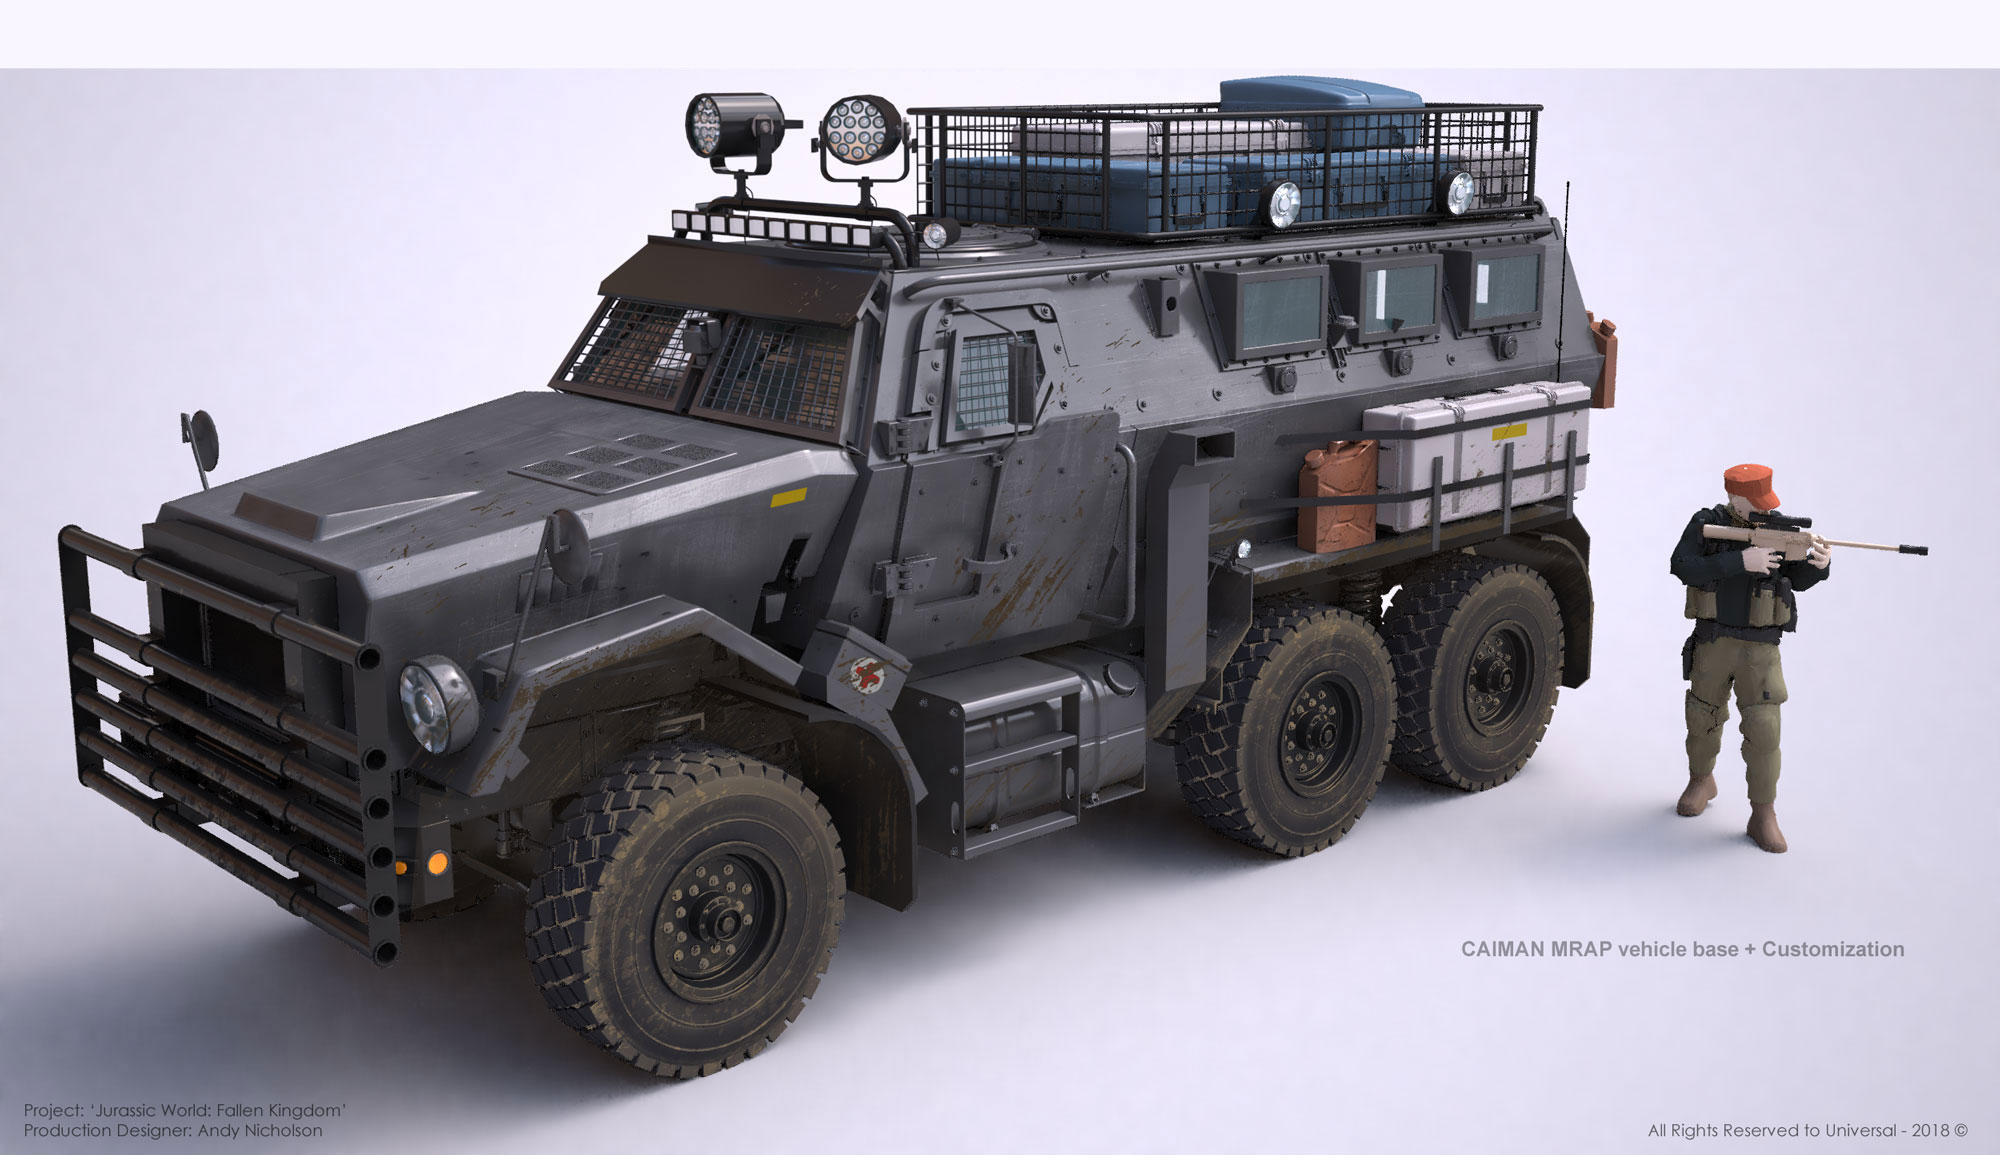 160913_ASSET_VEHICLE_MRAP_AV_01_1003